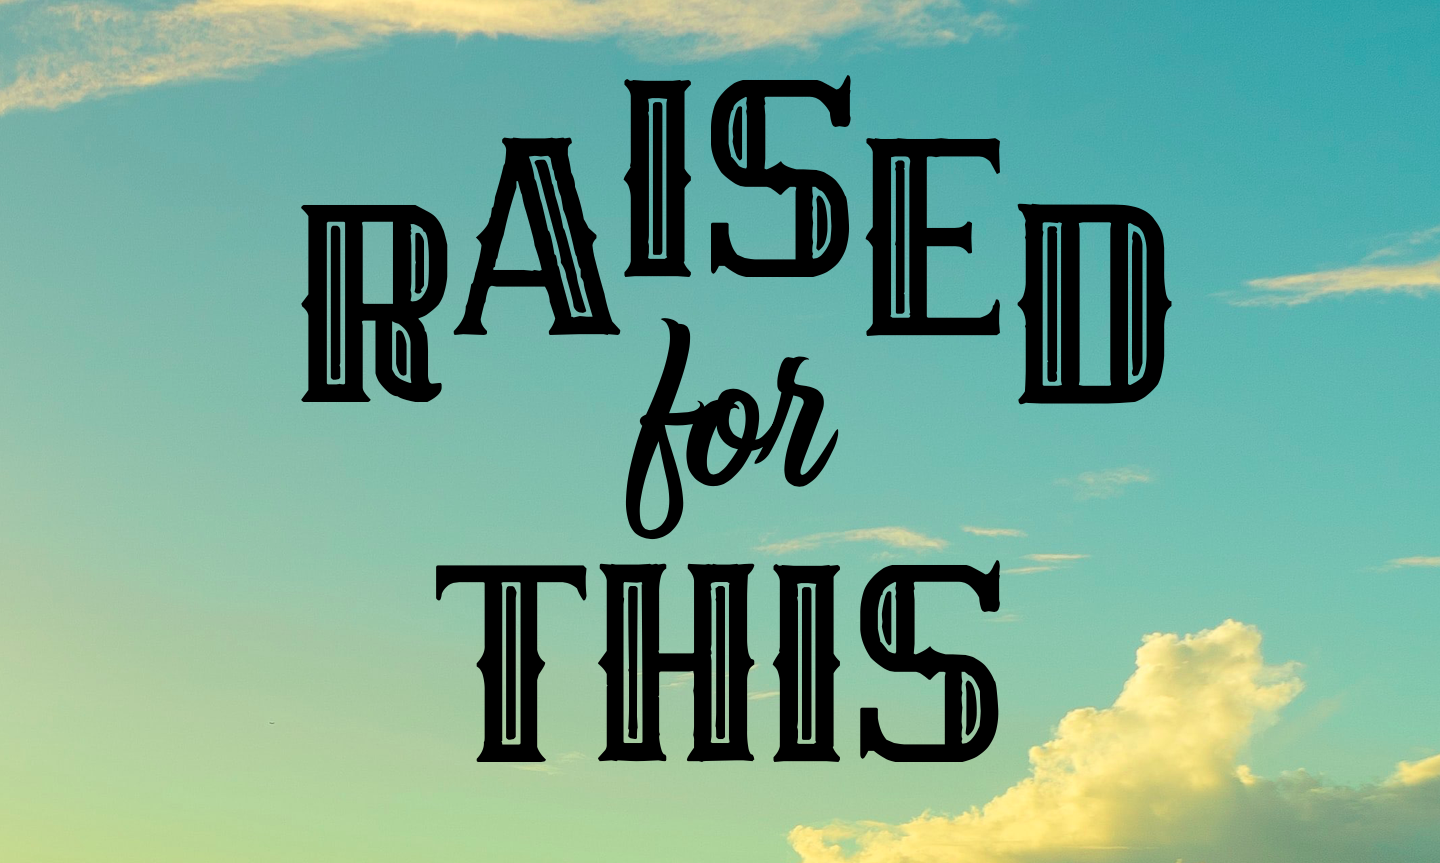 Raised for Peace